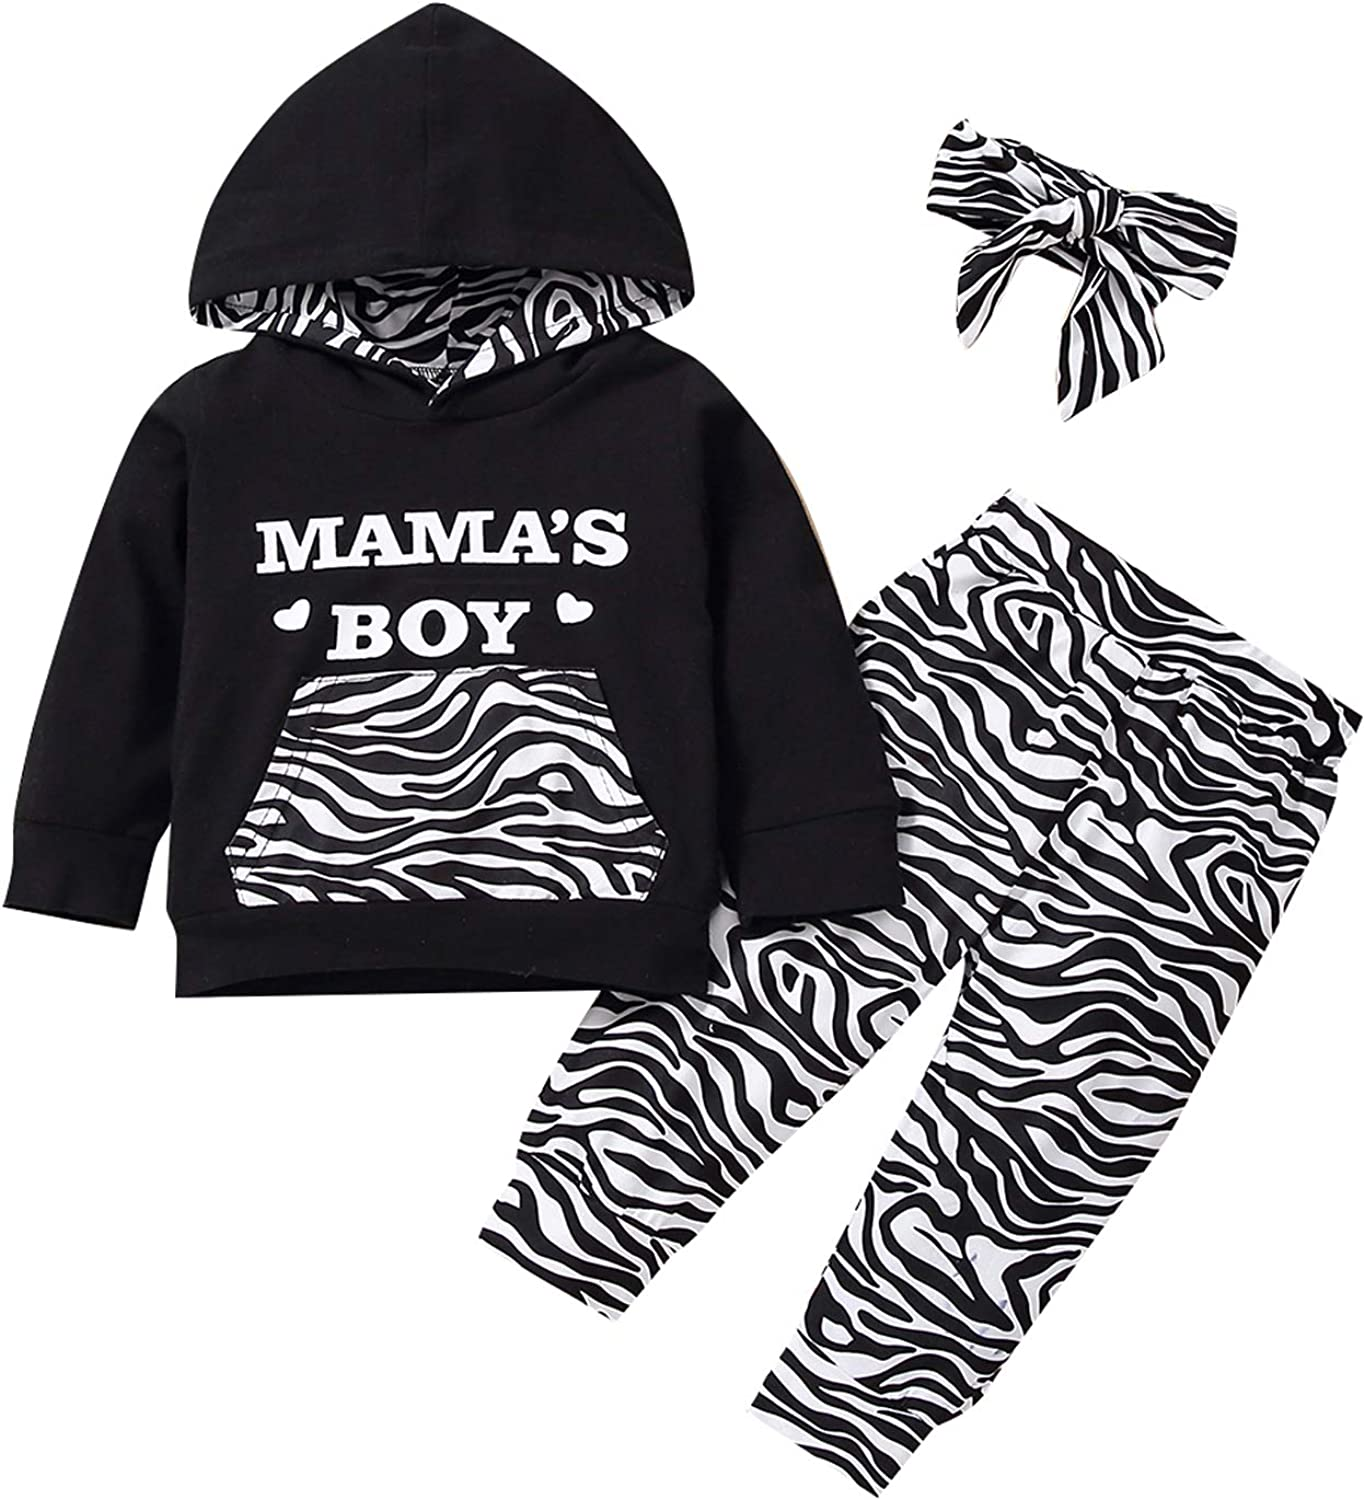 Toddler Infant Baby Boys Dinosaur Outfit,Newborn Long Sleeve Camouflage Hoodie Tops Fall Winter Sweatsuit Pants Outfit Set